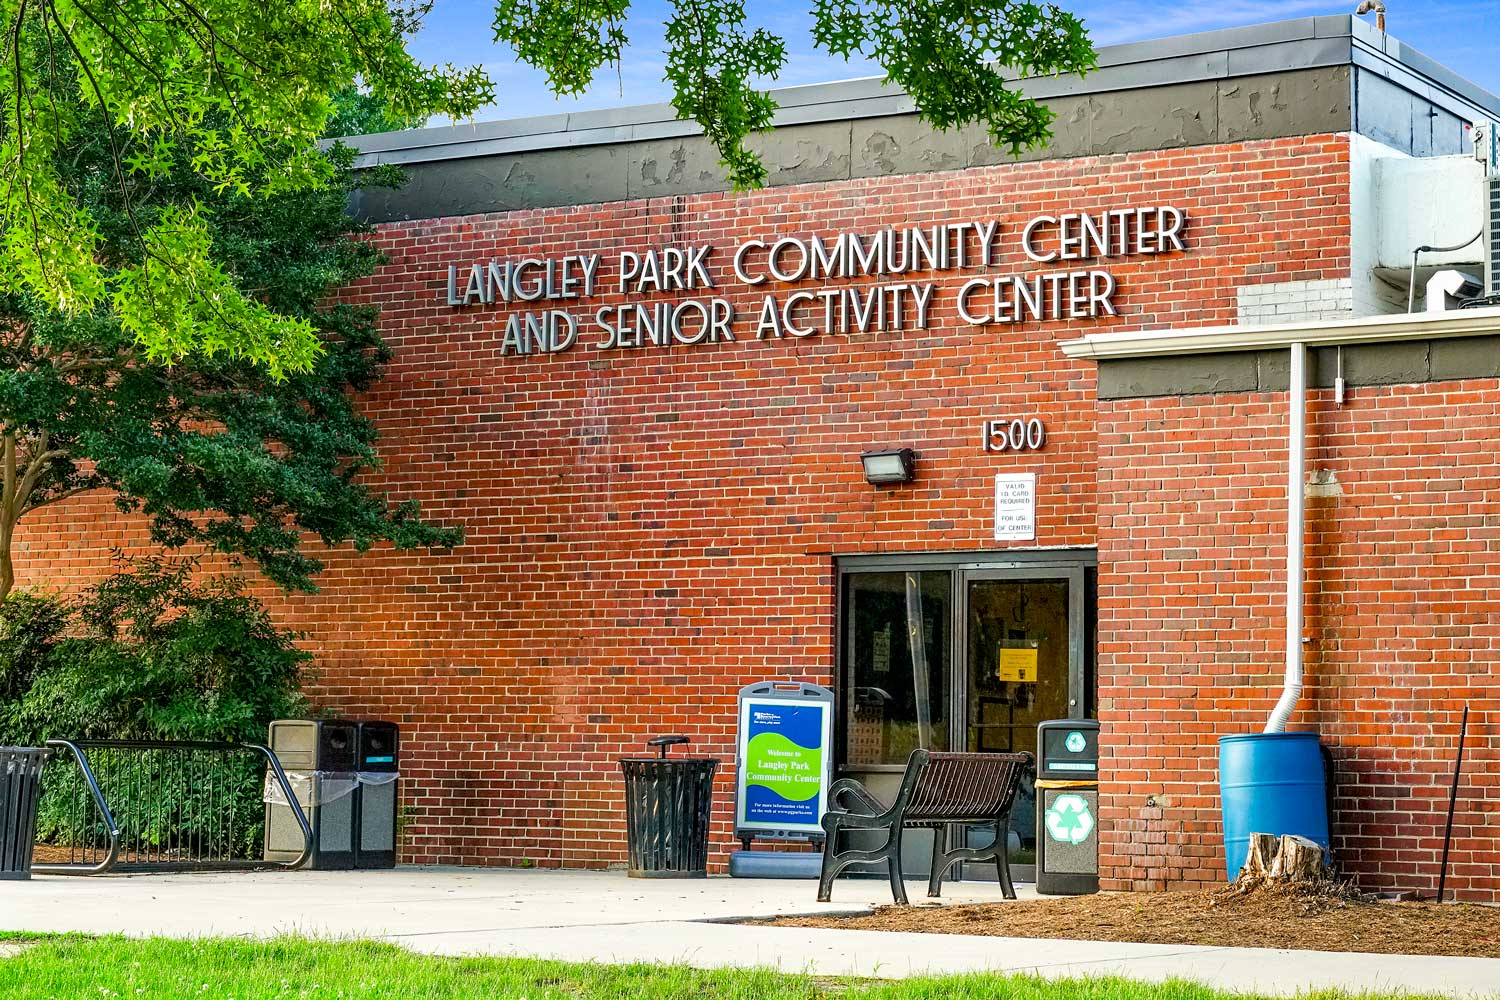 10 minutes to Langley Park Community Center and Senior Activity Center